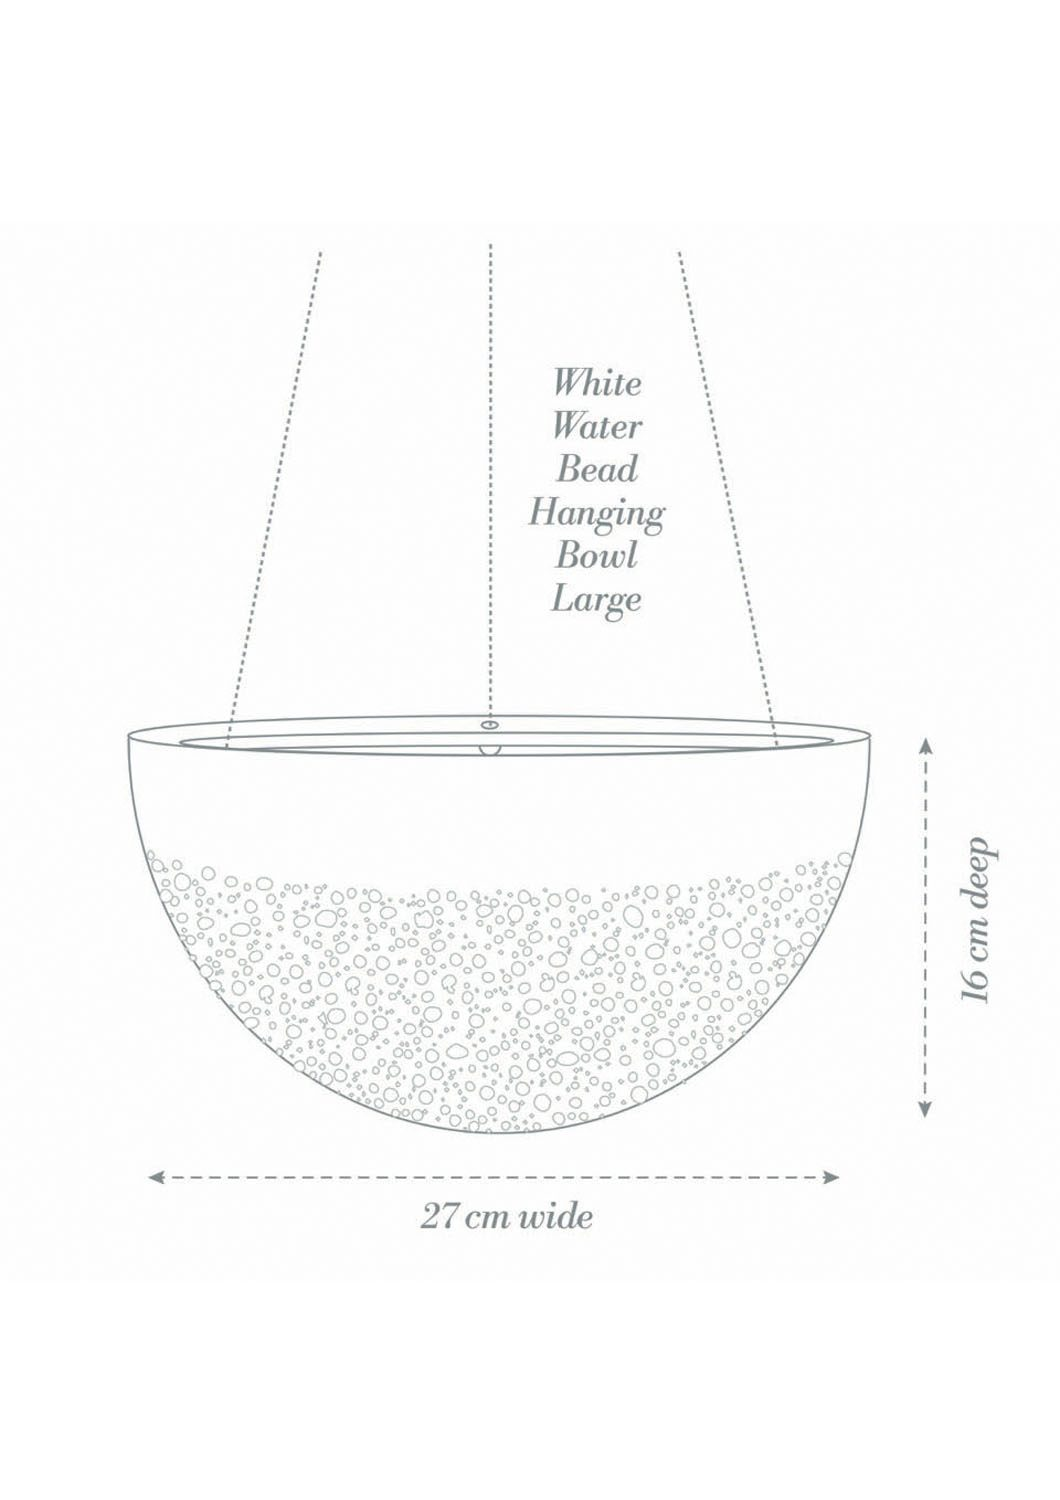 Angus & Celeste White Water Bead Hanging Planter Large Product Diagram